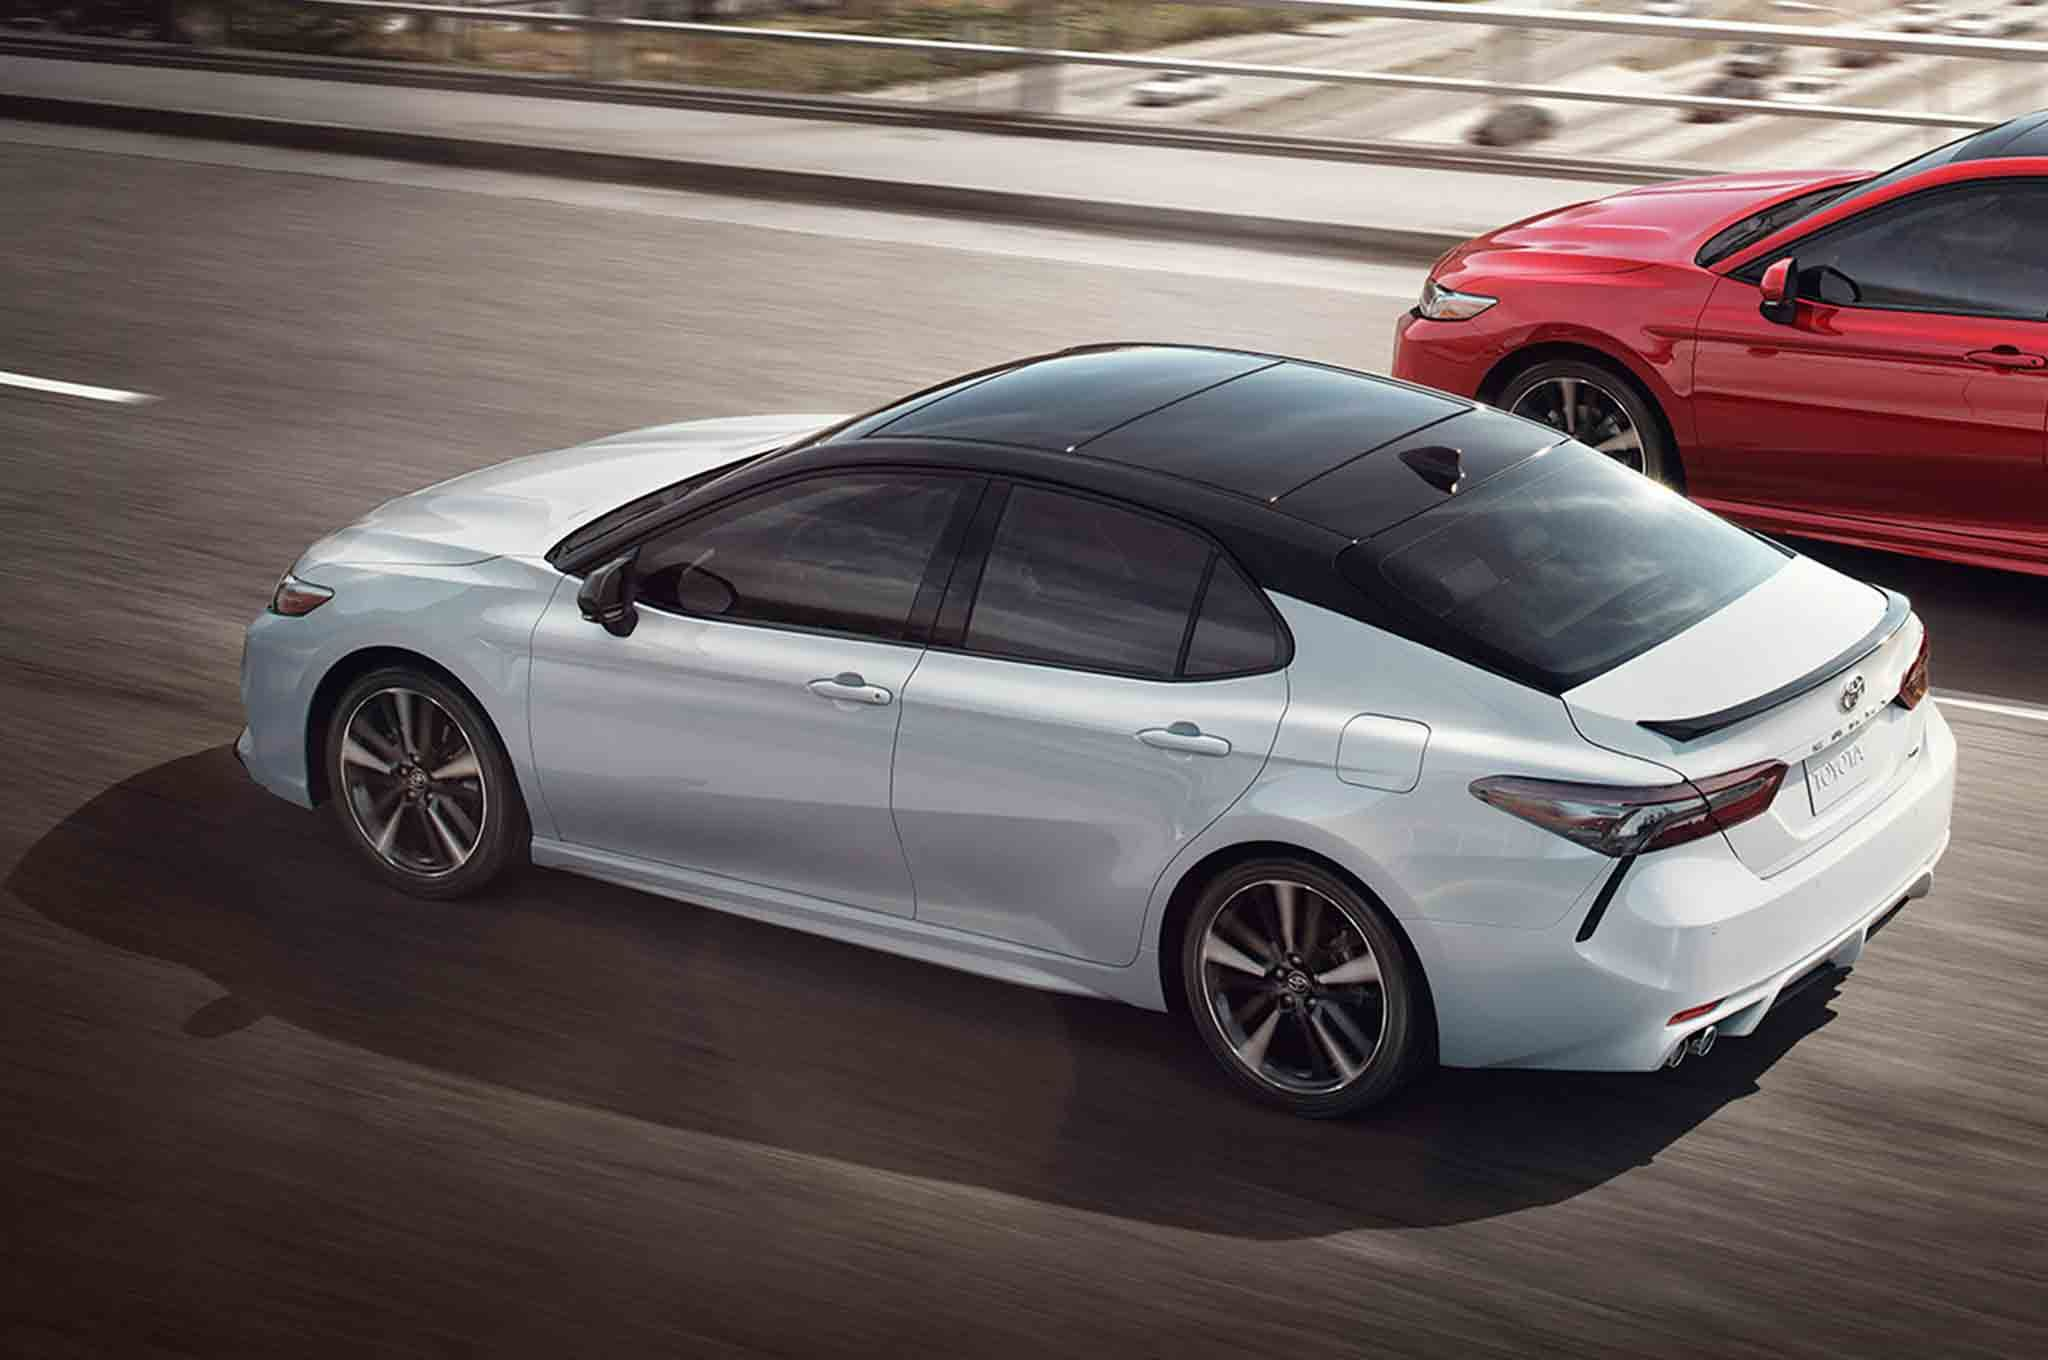 2018 Toyota Camry Colors Release Date Redesign Price Are You All Set For The Arrival Of 8 Technology Sedan